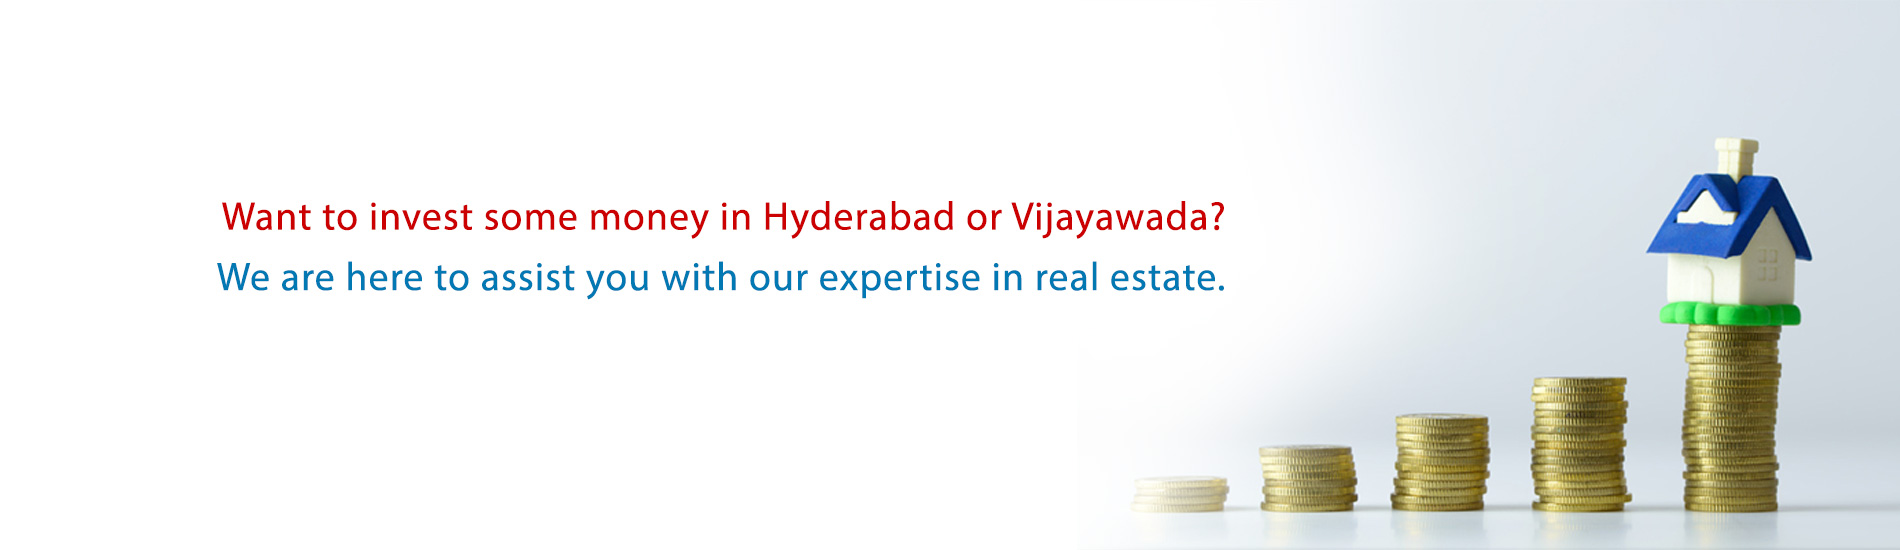 Invest in Real estate in Hyderabad and Vijayawada.